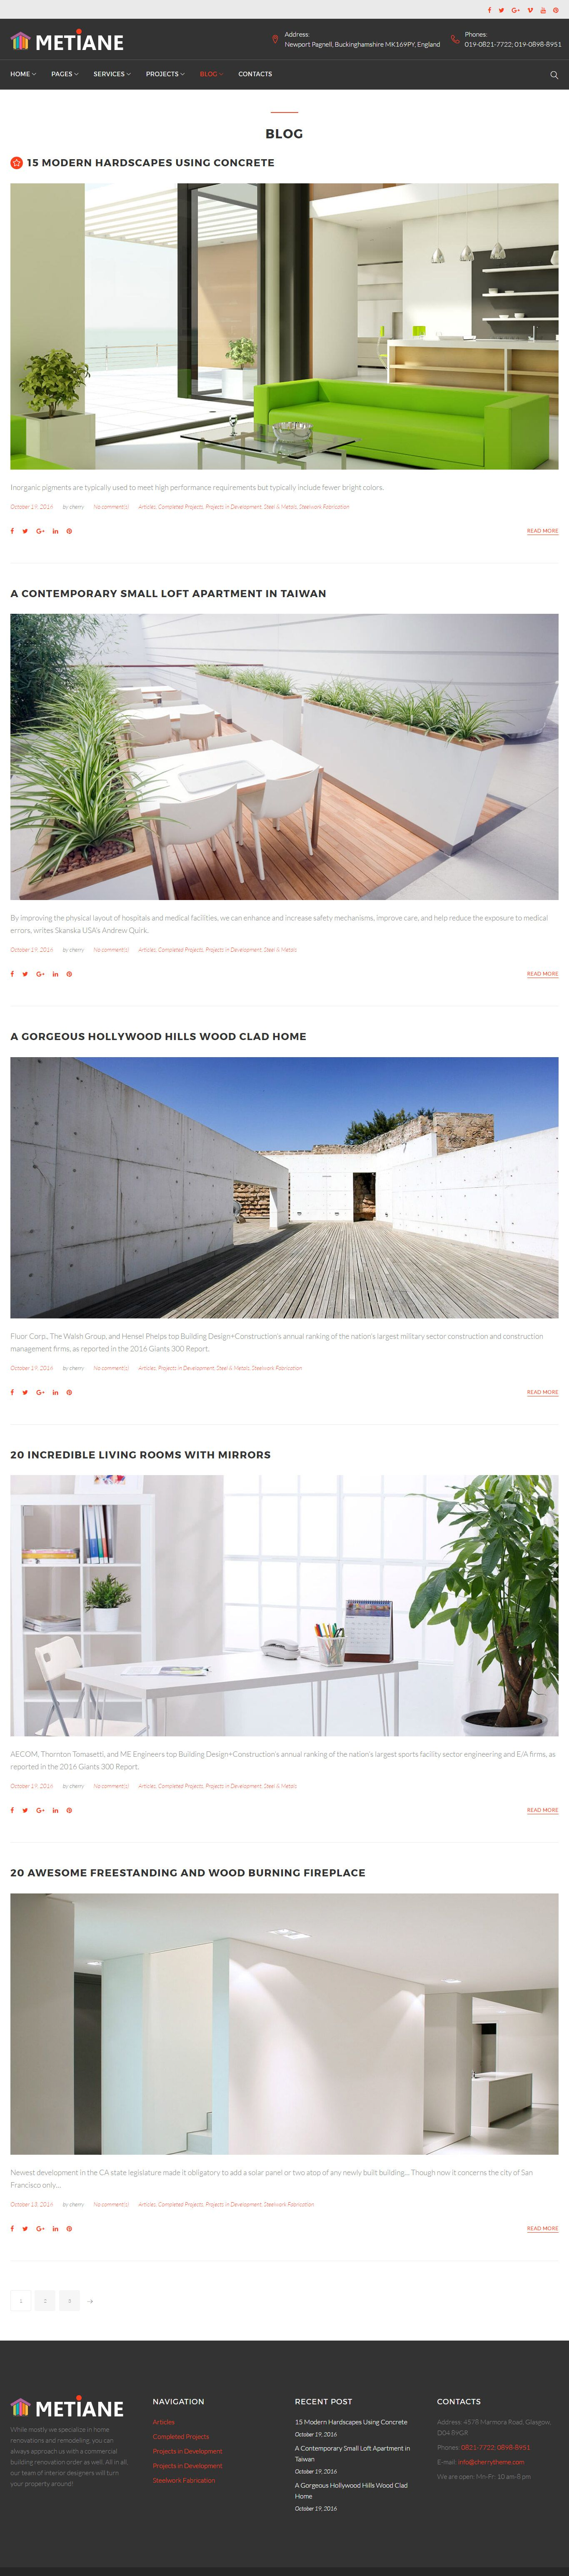 Metiane - Interior Design Wordpress Theme Screenshot 2